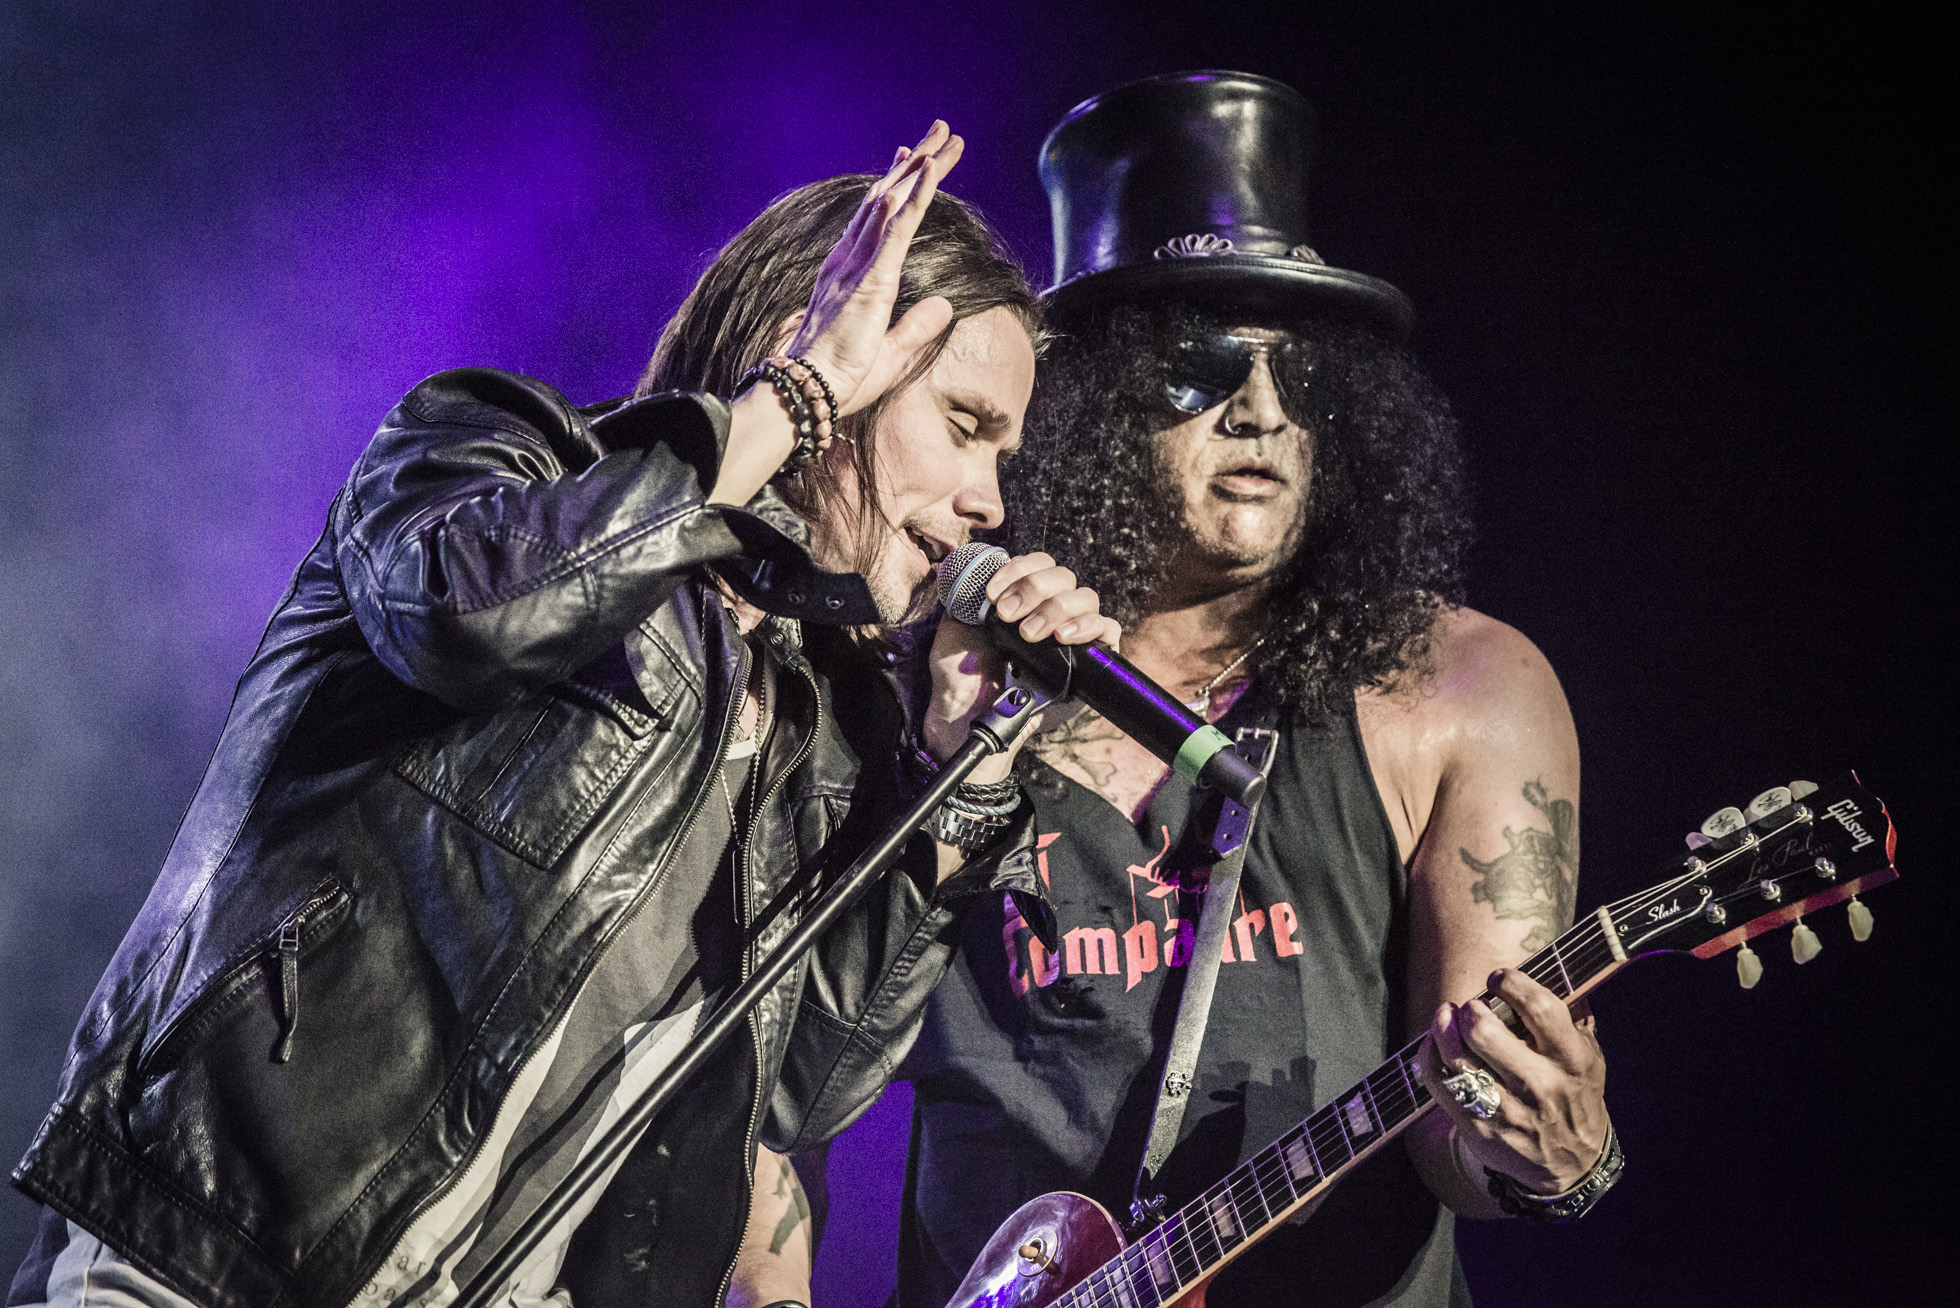 Slash & Myles Kennedy at Birmingham LG Arena